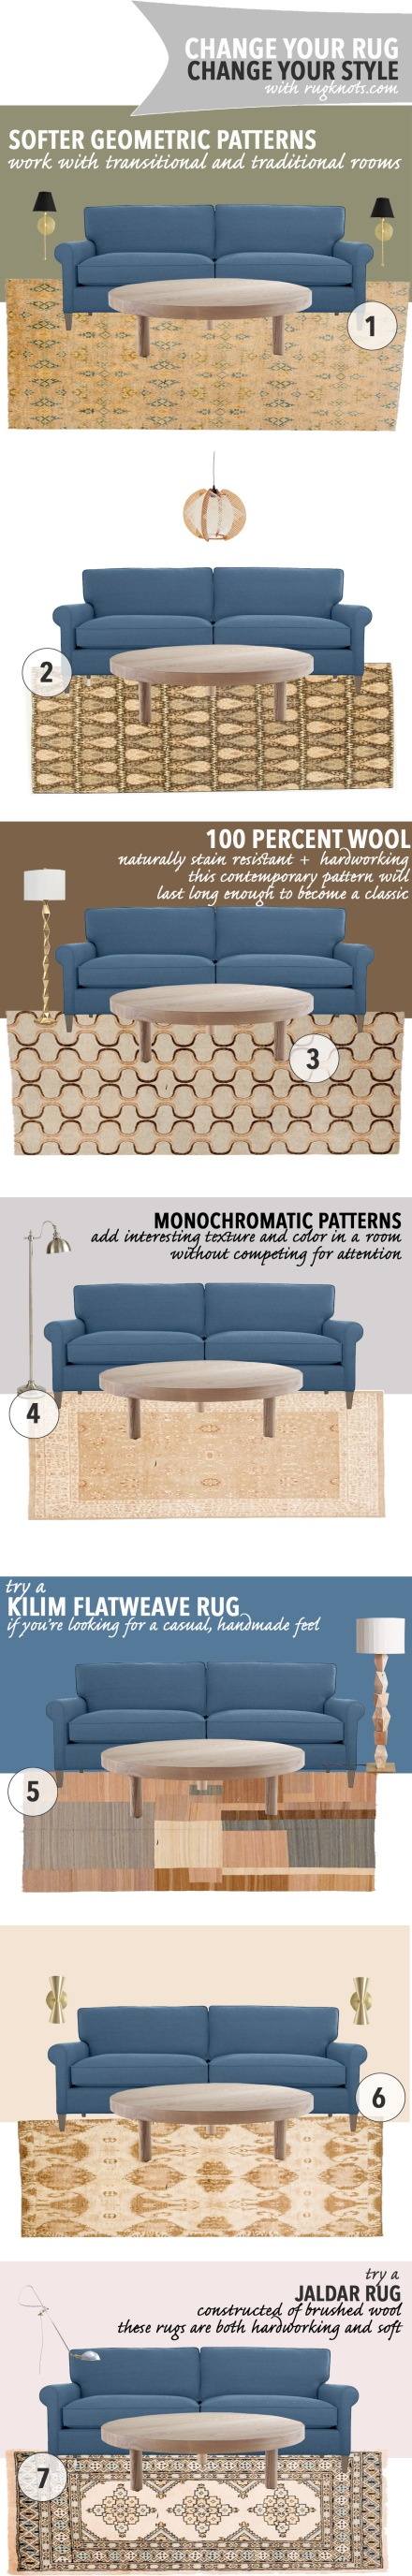 Change Your Rug | Change Your Style |www.theanatomyofdesign.com